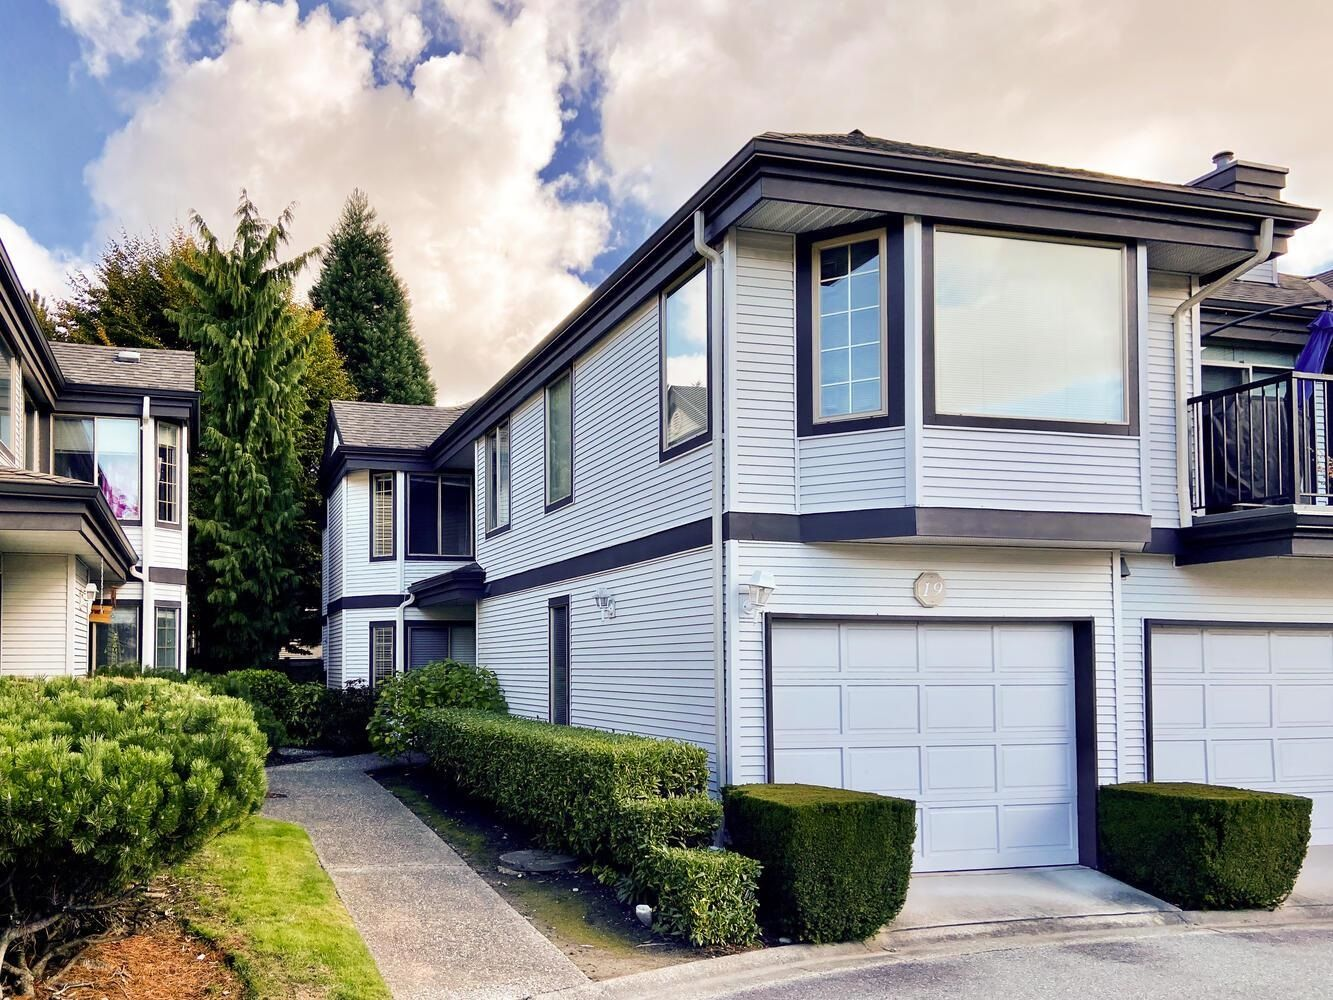 """Main Photo: 19 15840 84 Avenue in Surrey: Fleetwood Tynehead Townhouse for sale in """"Fleetwood Gables"""" : MLS®# R2625644"""